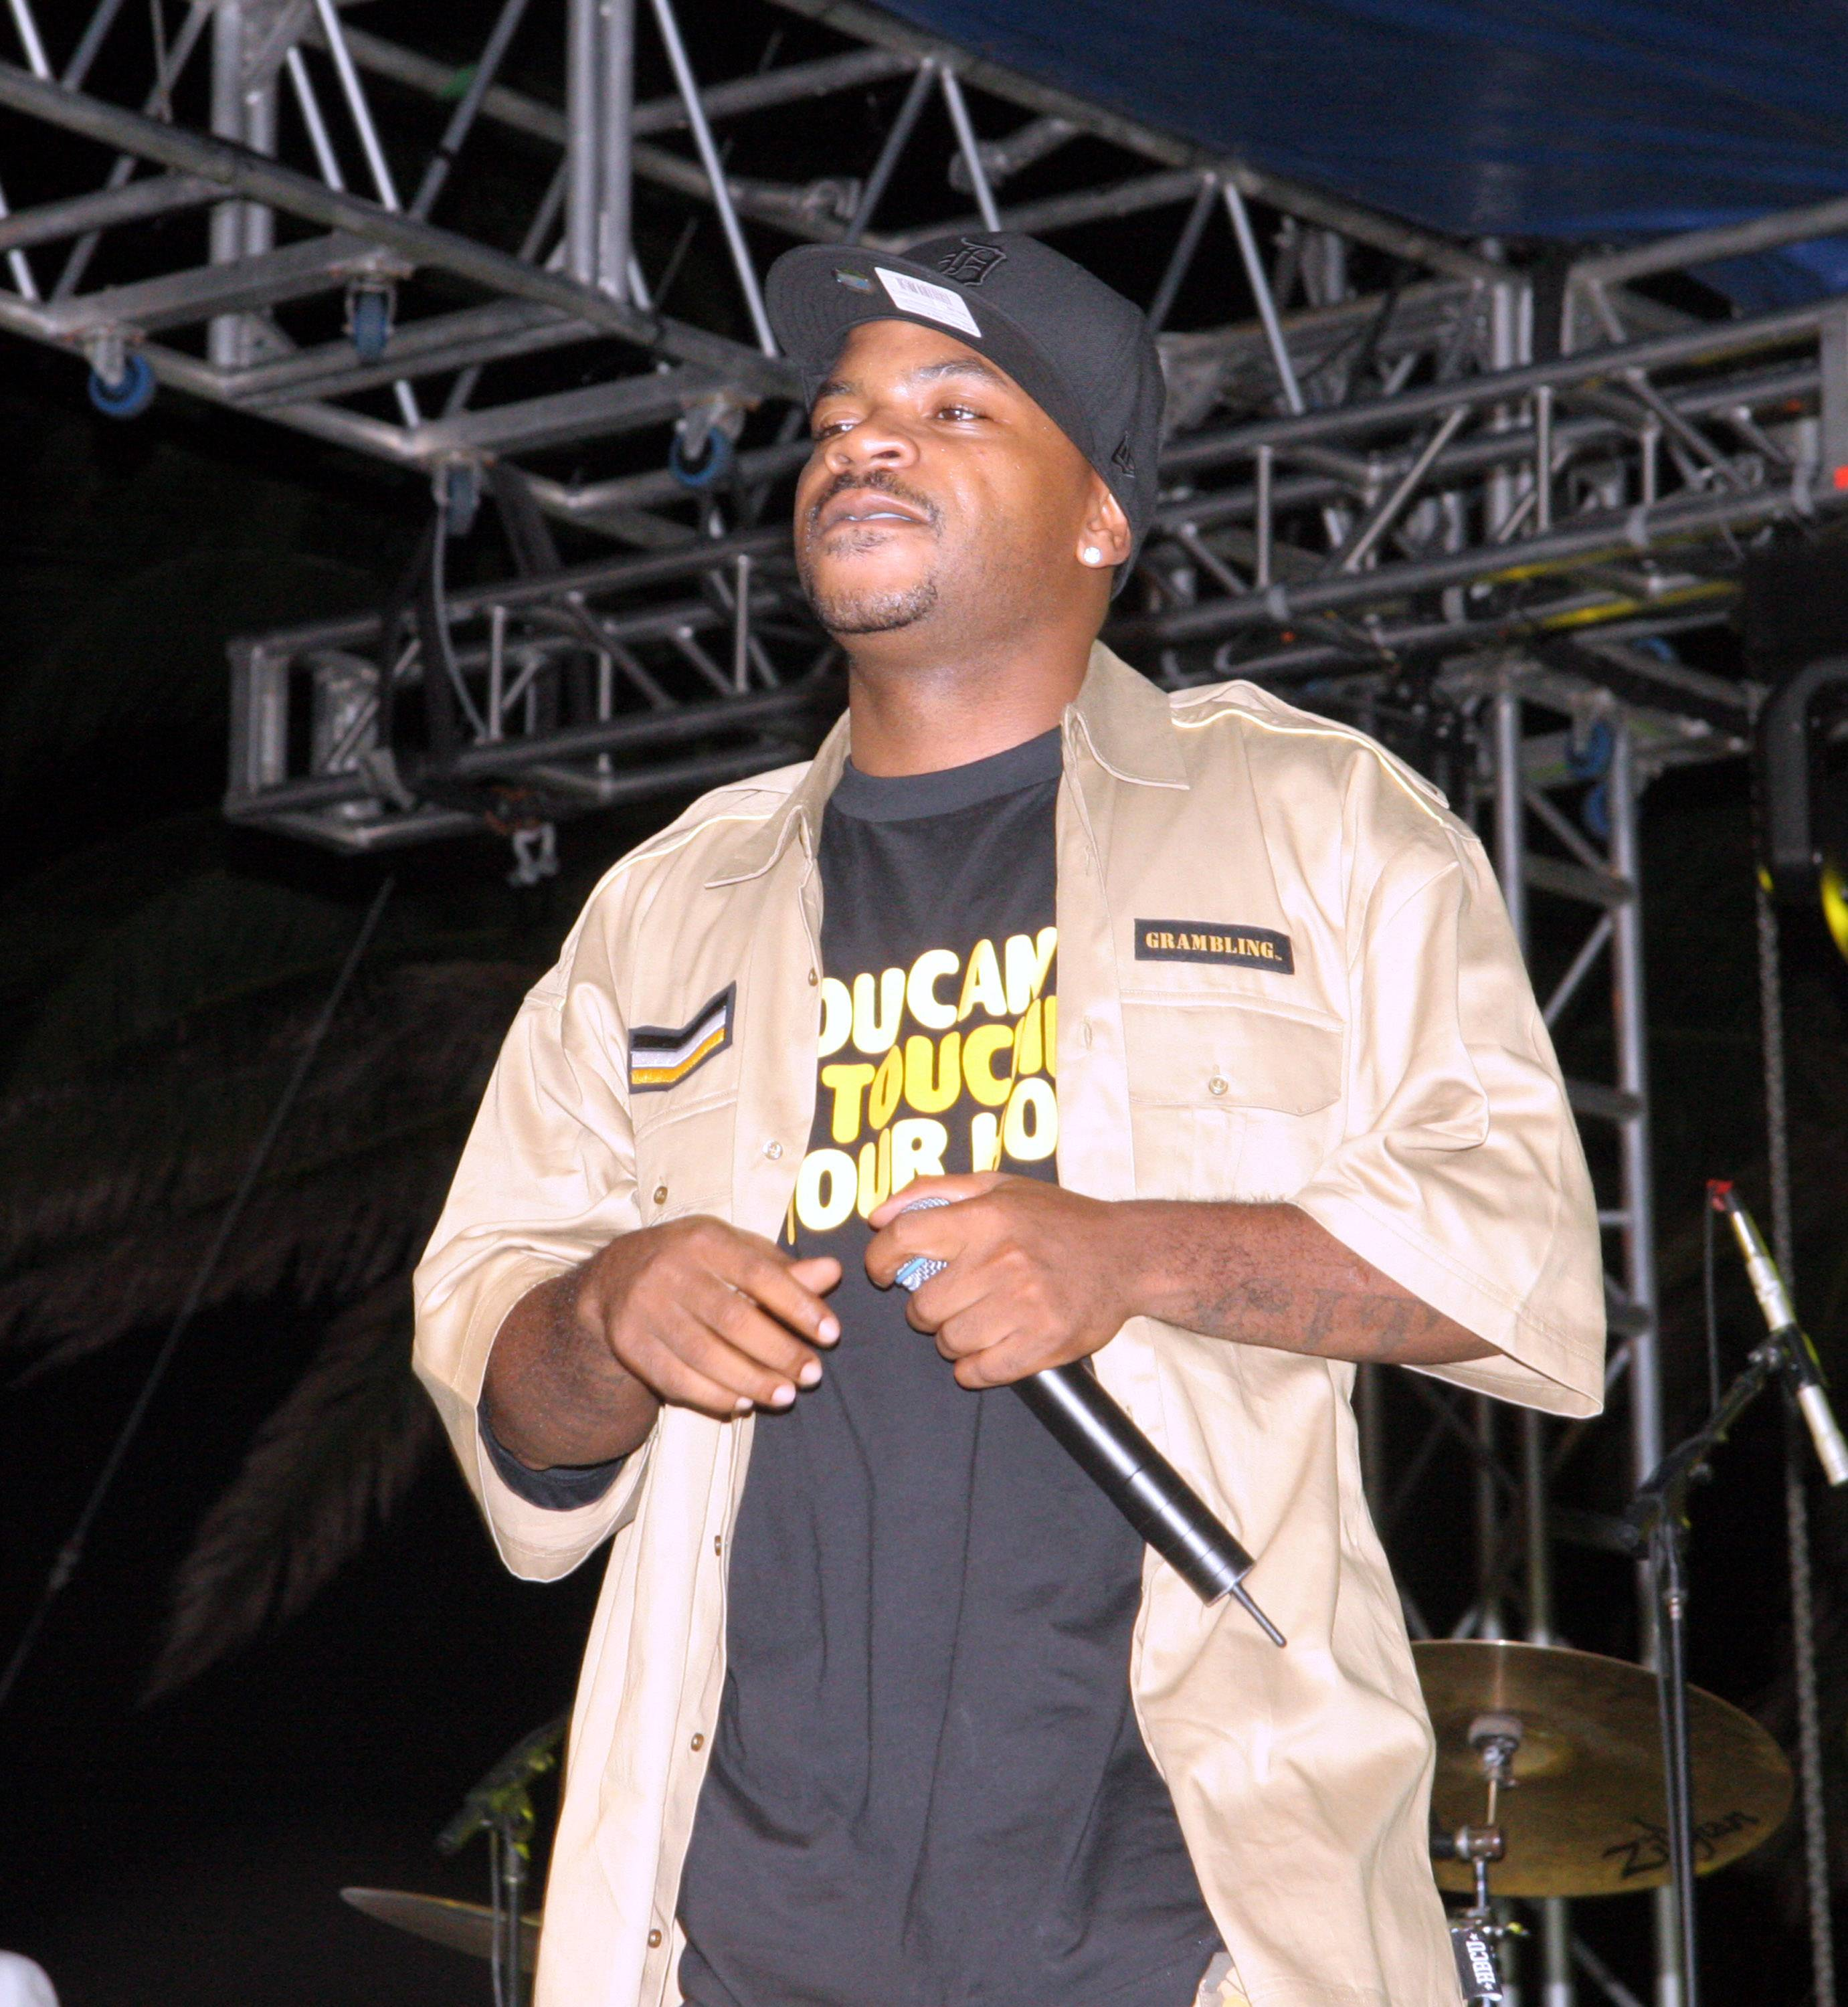 """Obie Trice featuring Nate Dogg, """"The Set Up"""" - The third single from Obie Trice's debut album, this cut brought Nate from the West to the D over a Dr. Dre beat.(Photo: Johnny Nunez/WireImage)"""